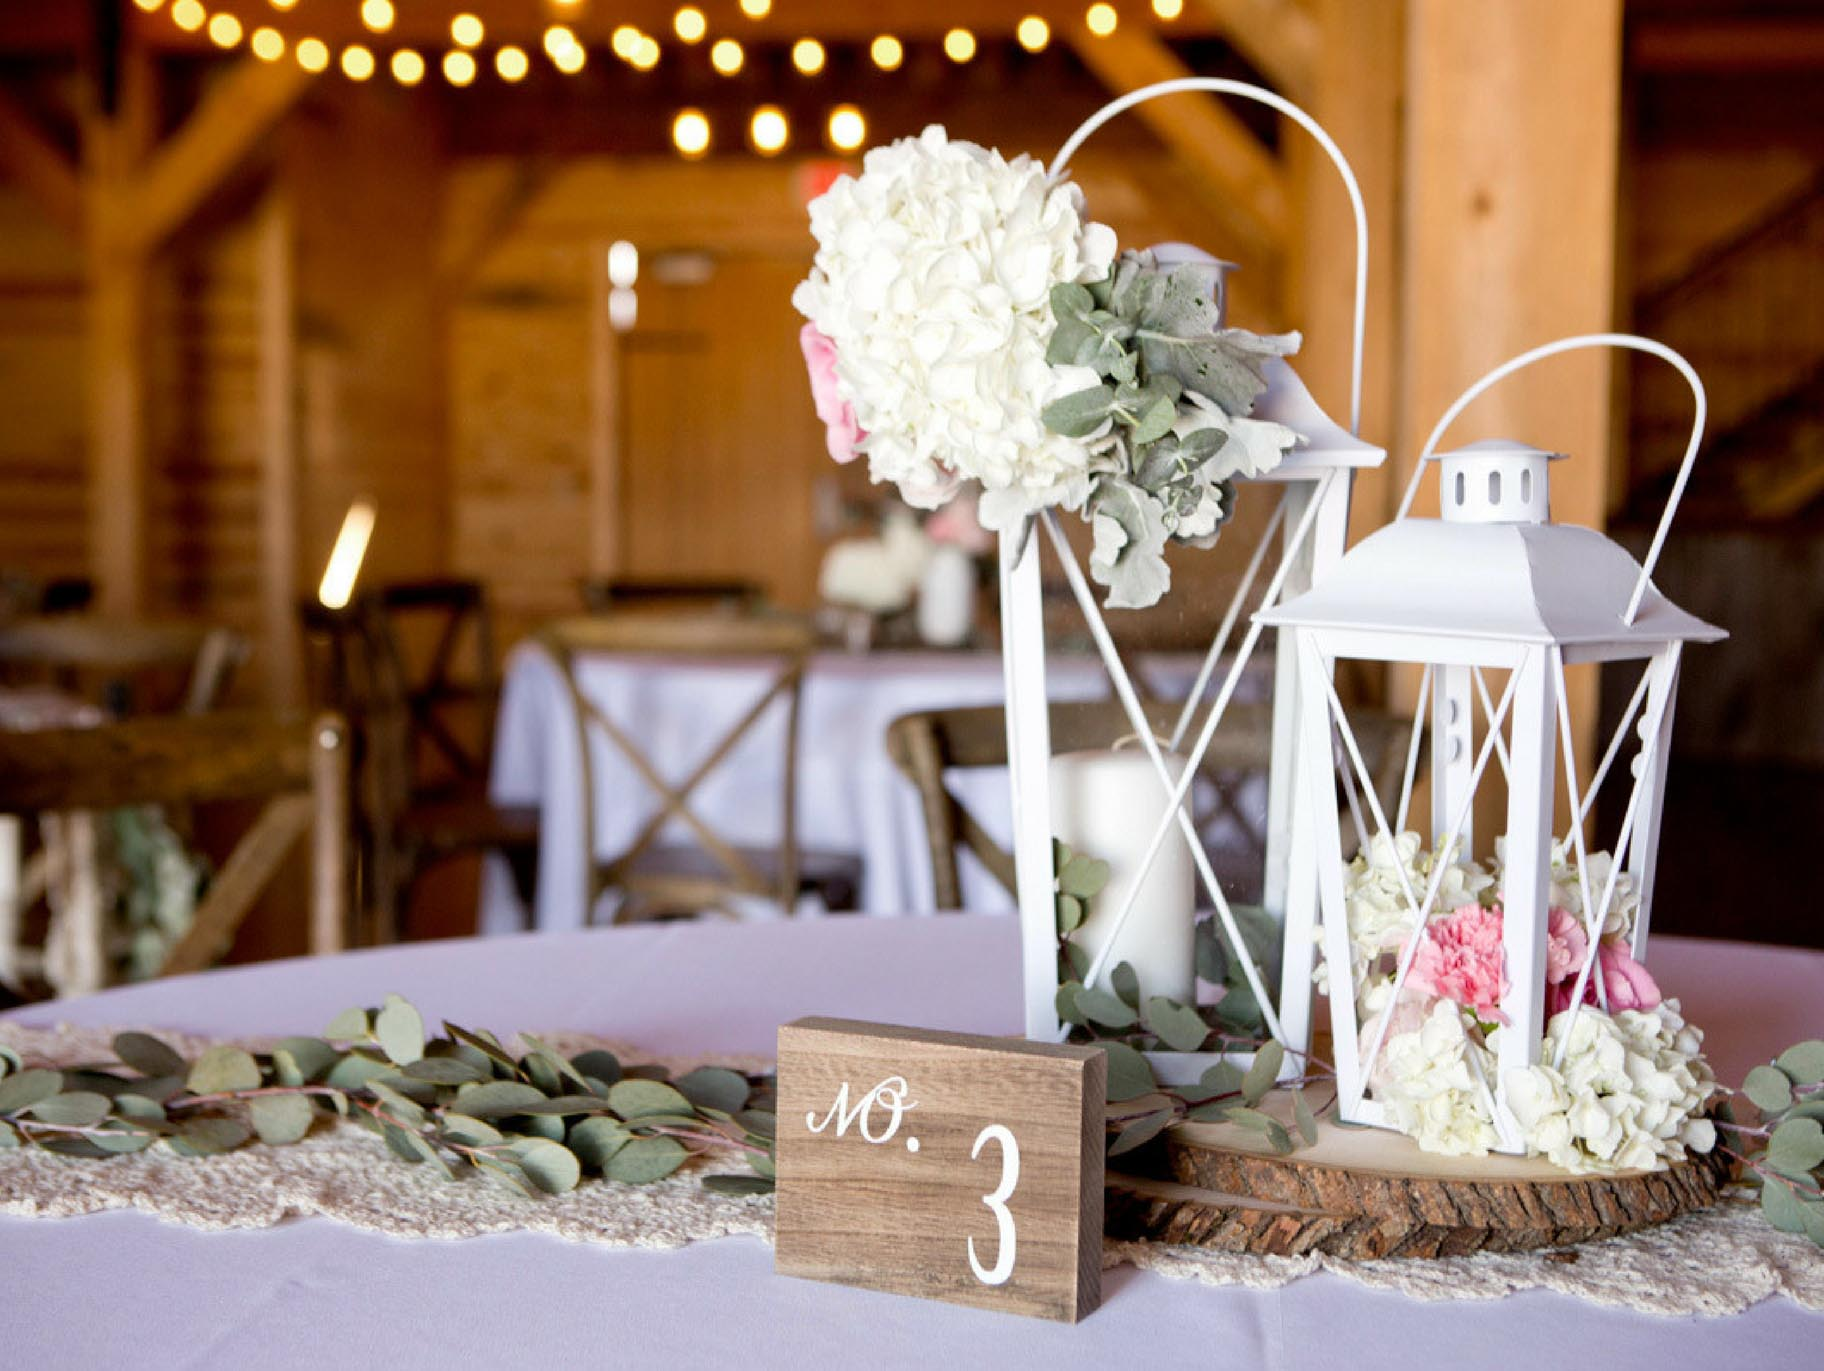 Diy Wedding Centerpiece Ideas For A